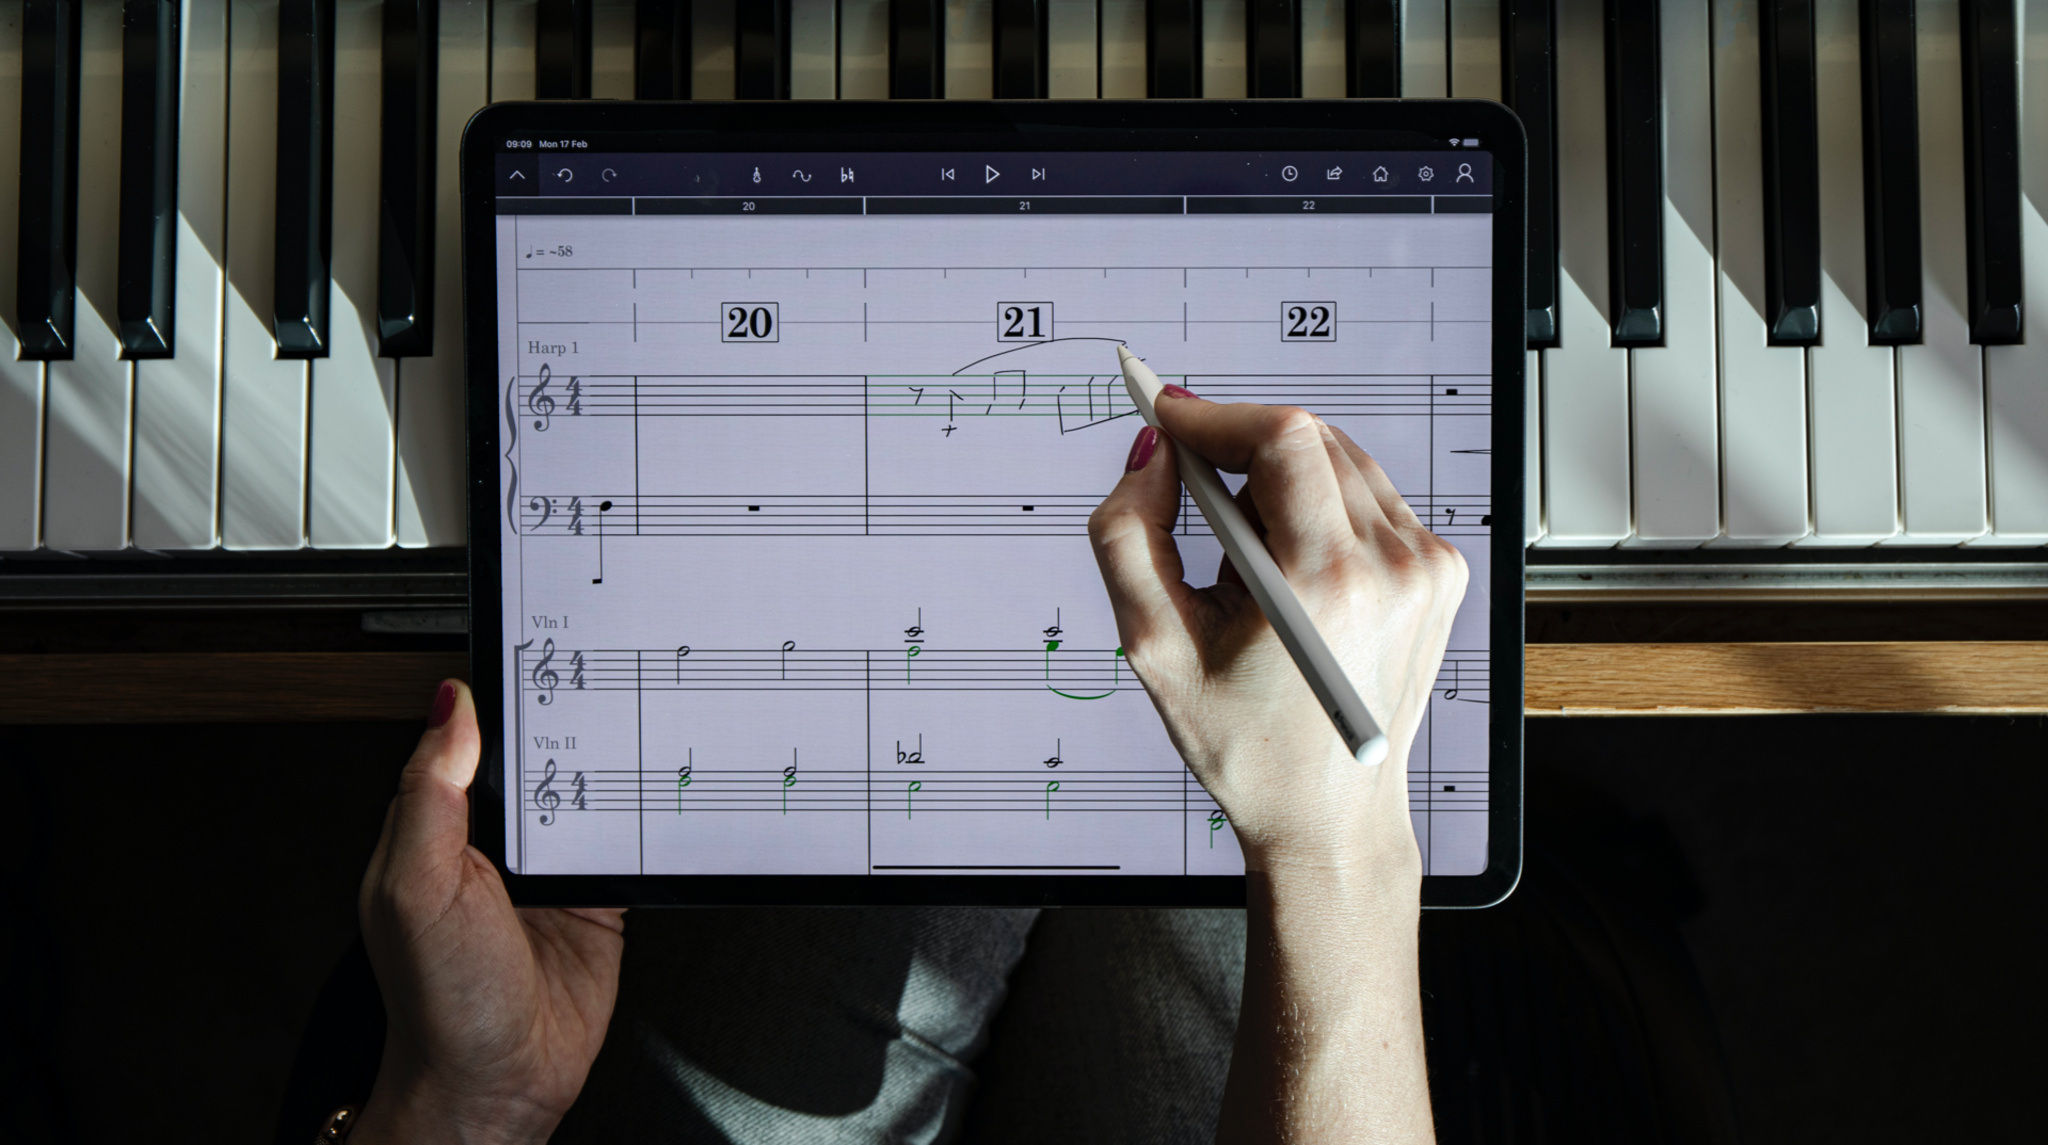 Person using Apple Pencil to add notes to StaffPad on iPad Pro in front of piano